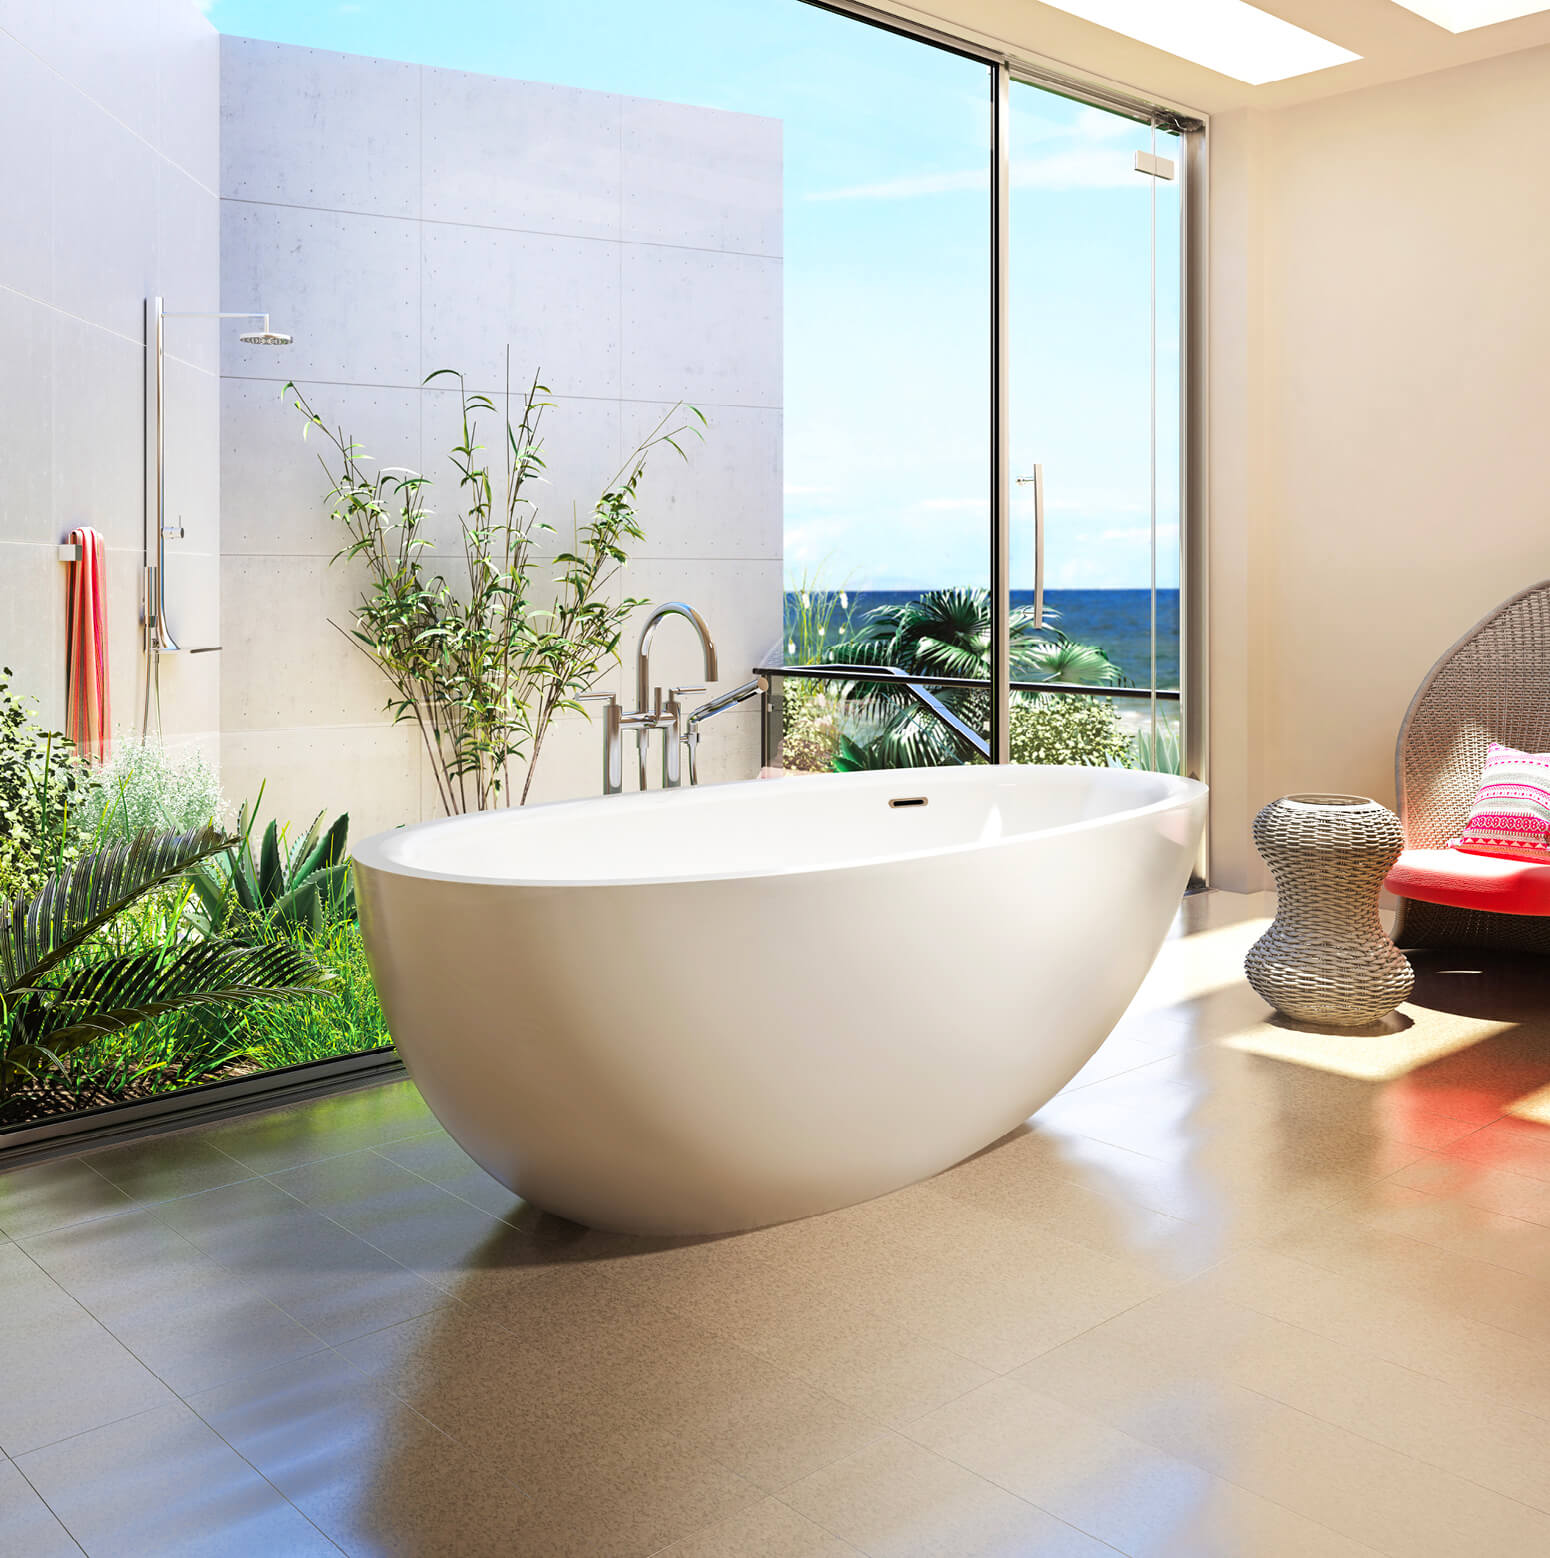 Bainultra Essencia® freestanding air jet bathtub for your modern bathroom